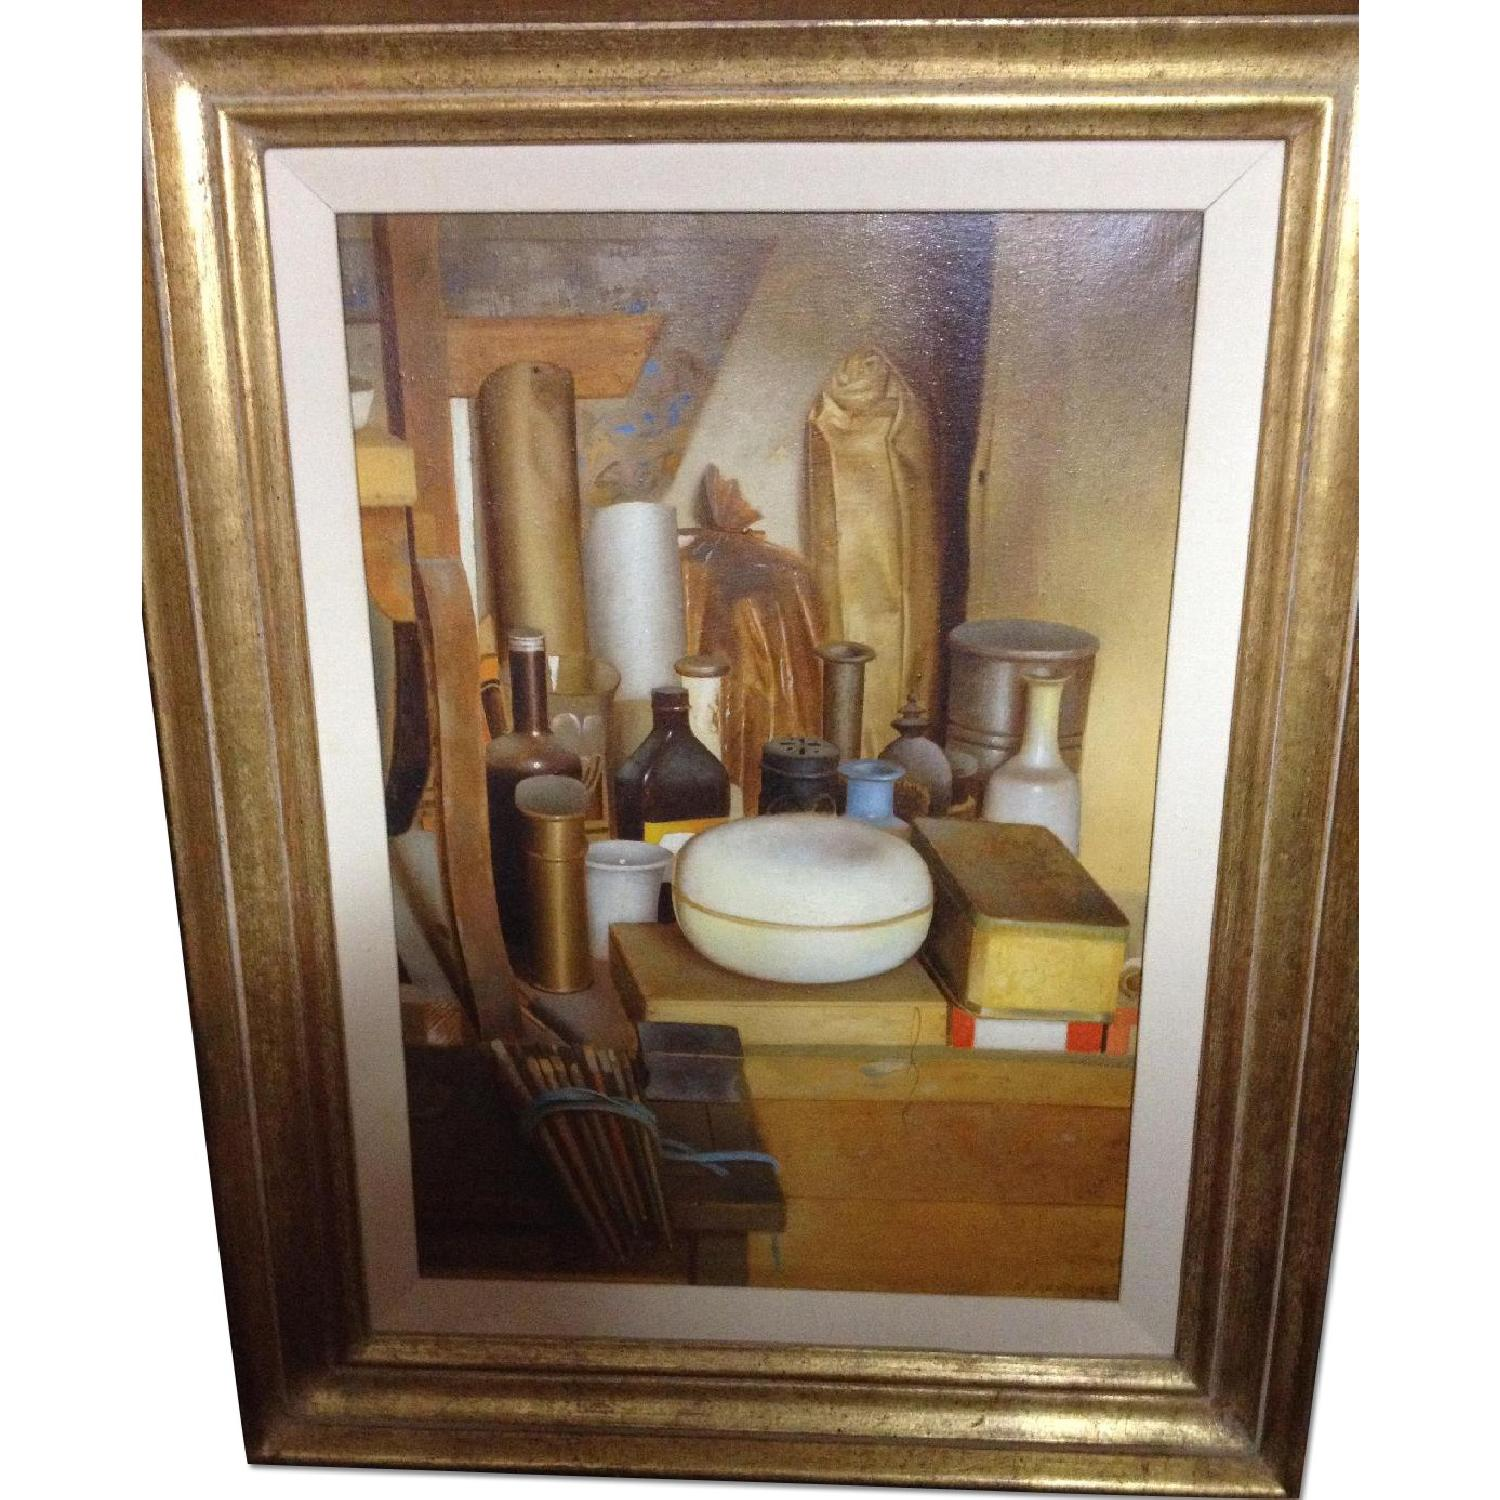 Assemblage Oil Painting by Walter Jervolino